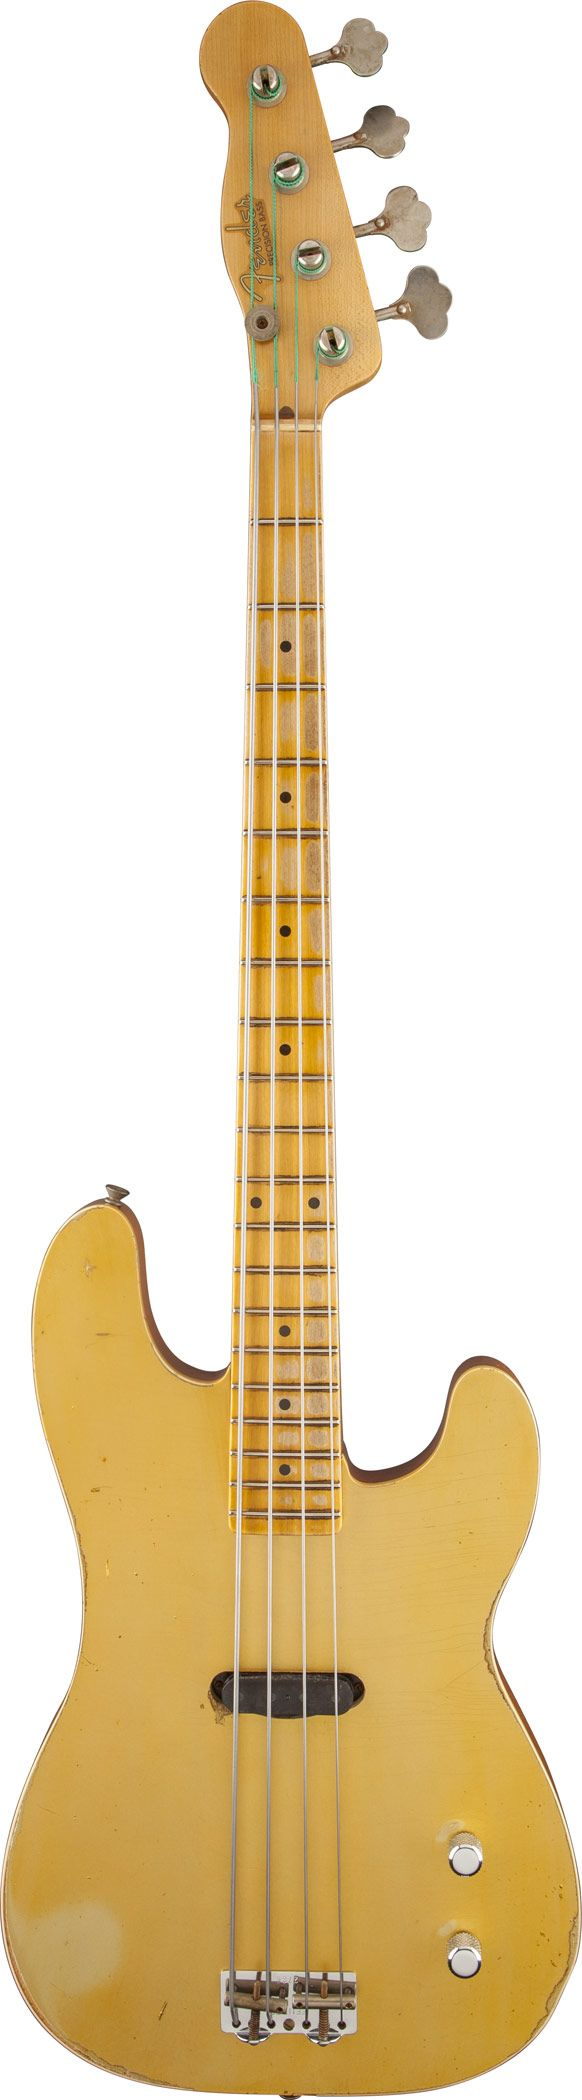 f0b9bcf1243c5fe02d01640485358e6e telecaster bass fender bass best 25 telecaster bass ideas on pinterest fender bass, vintage  at crackthecode.co